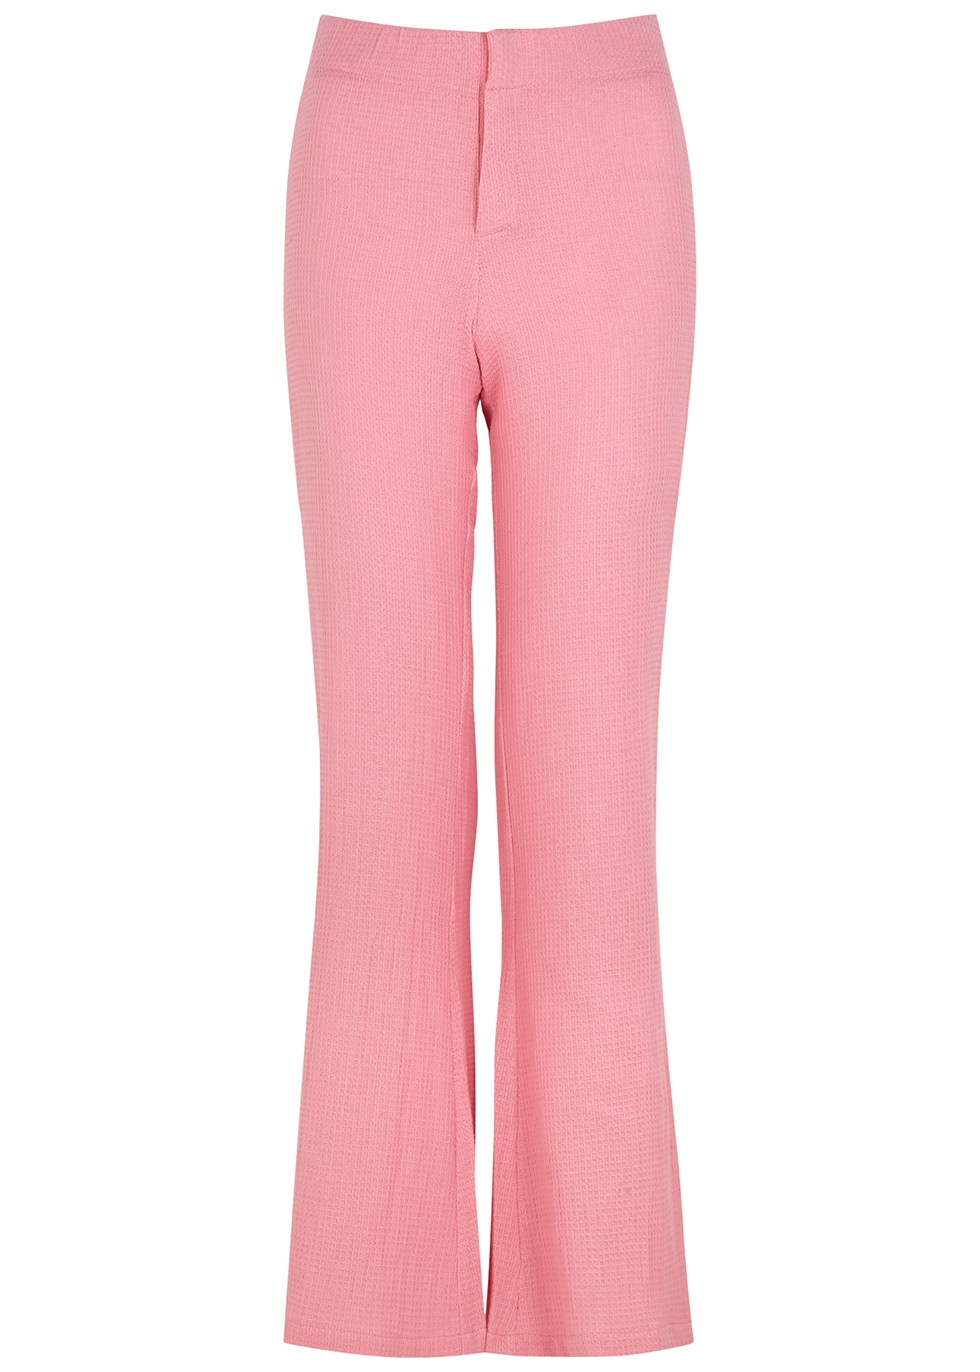 Comporta pink flared cotton trousers